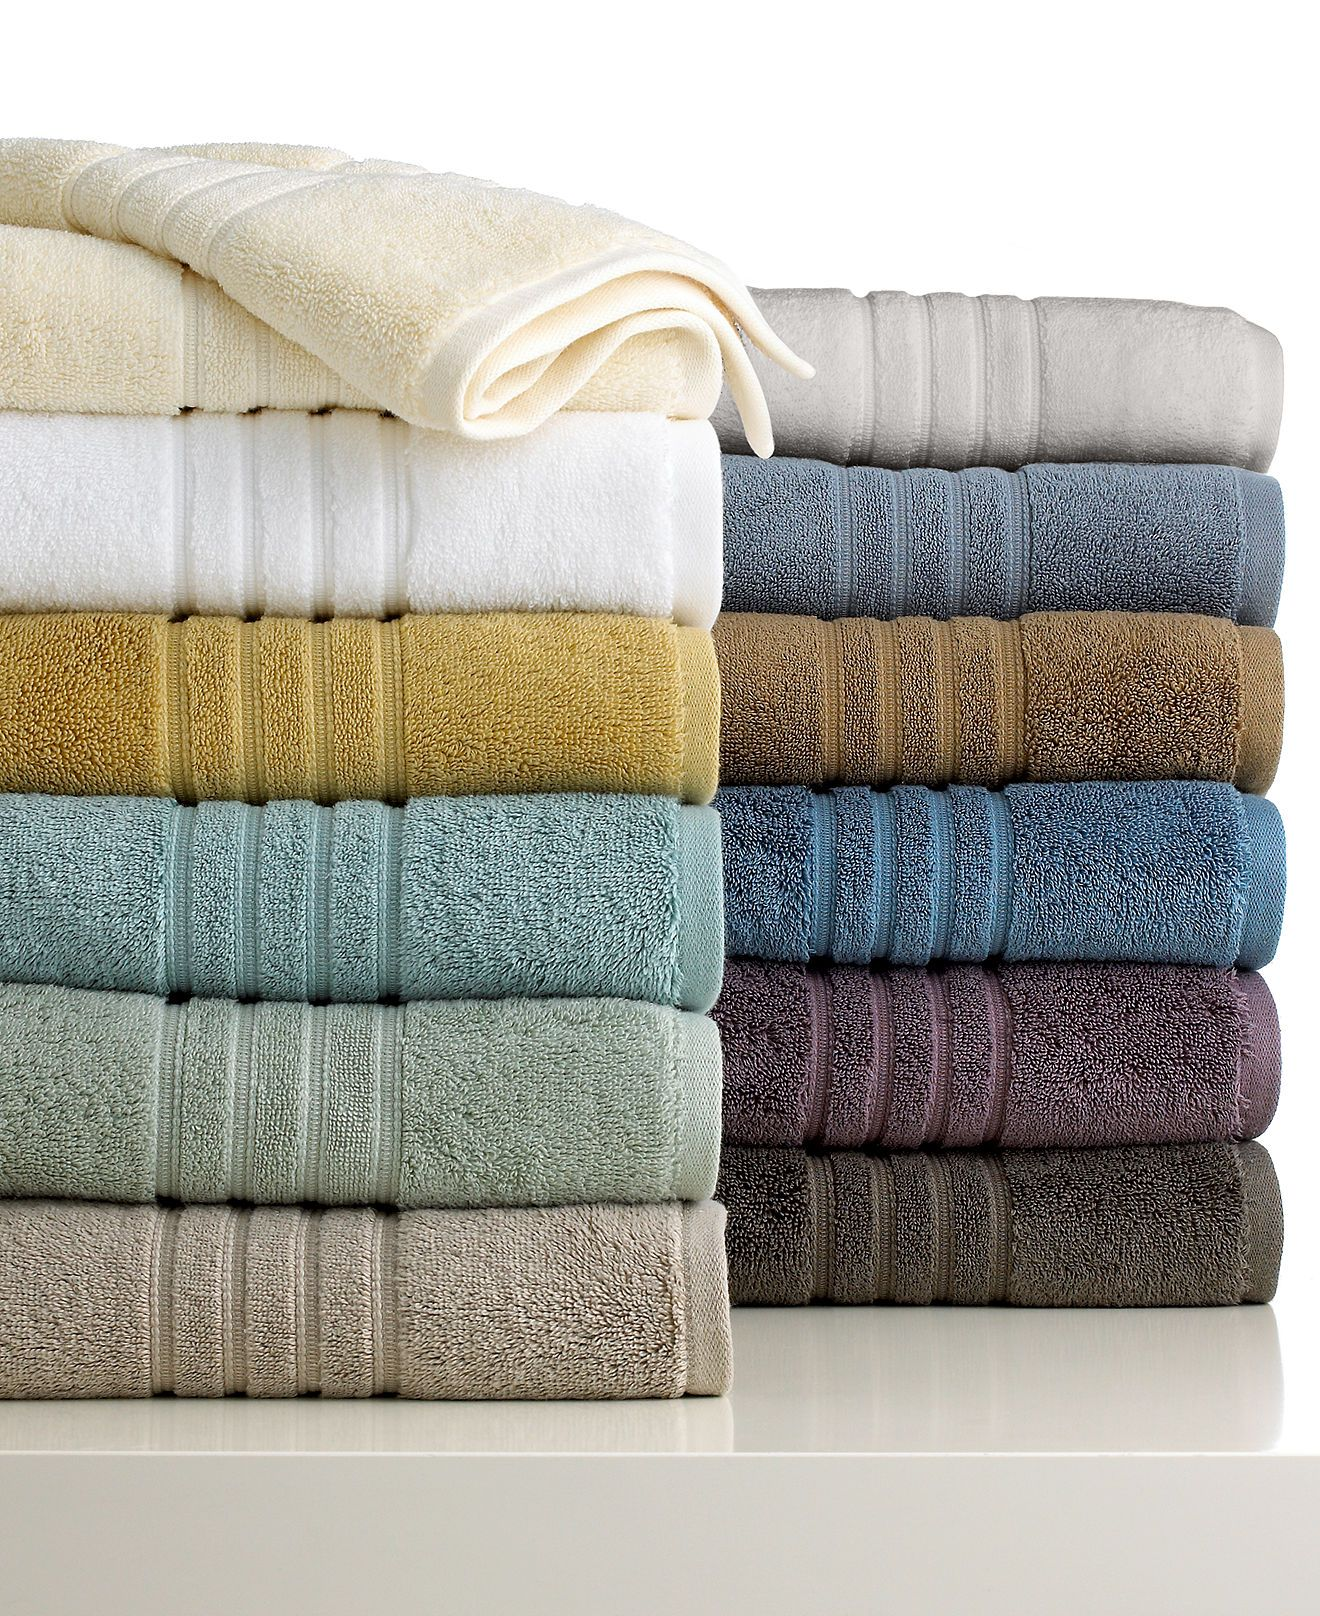 Hotel Collection Bath Towels Macy'